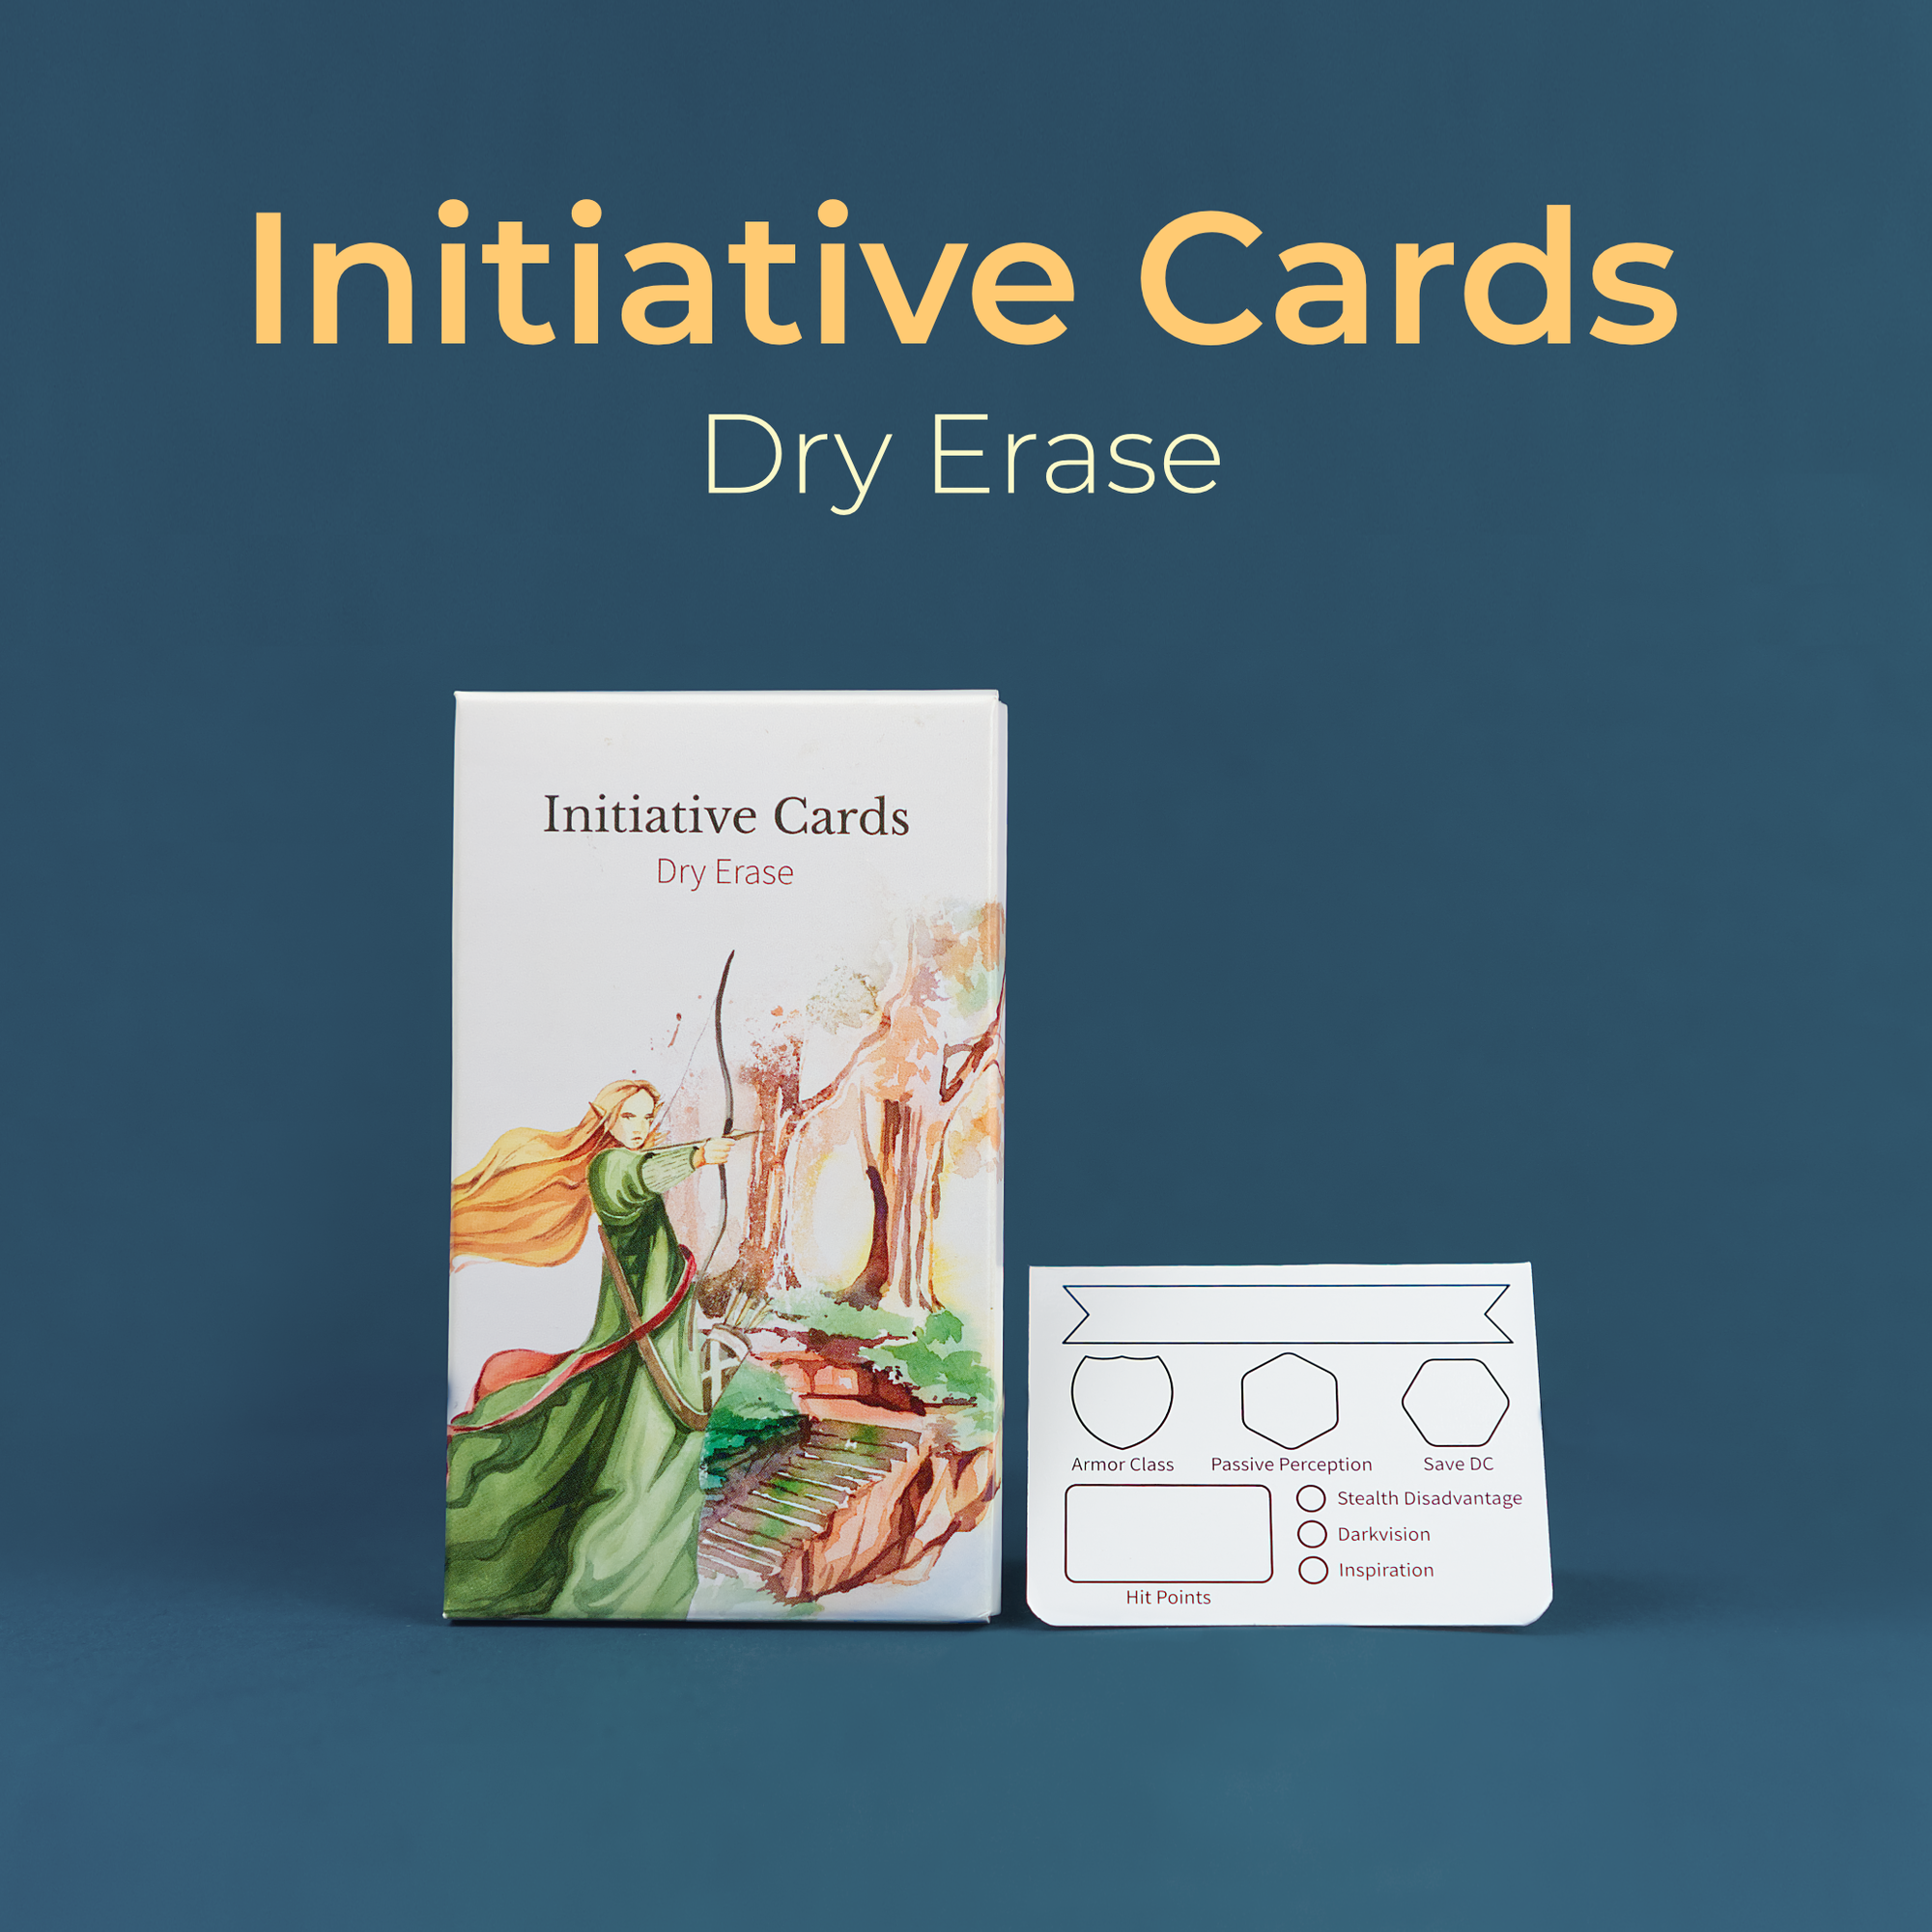 Dry Erase Initiative Cards